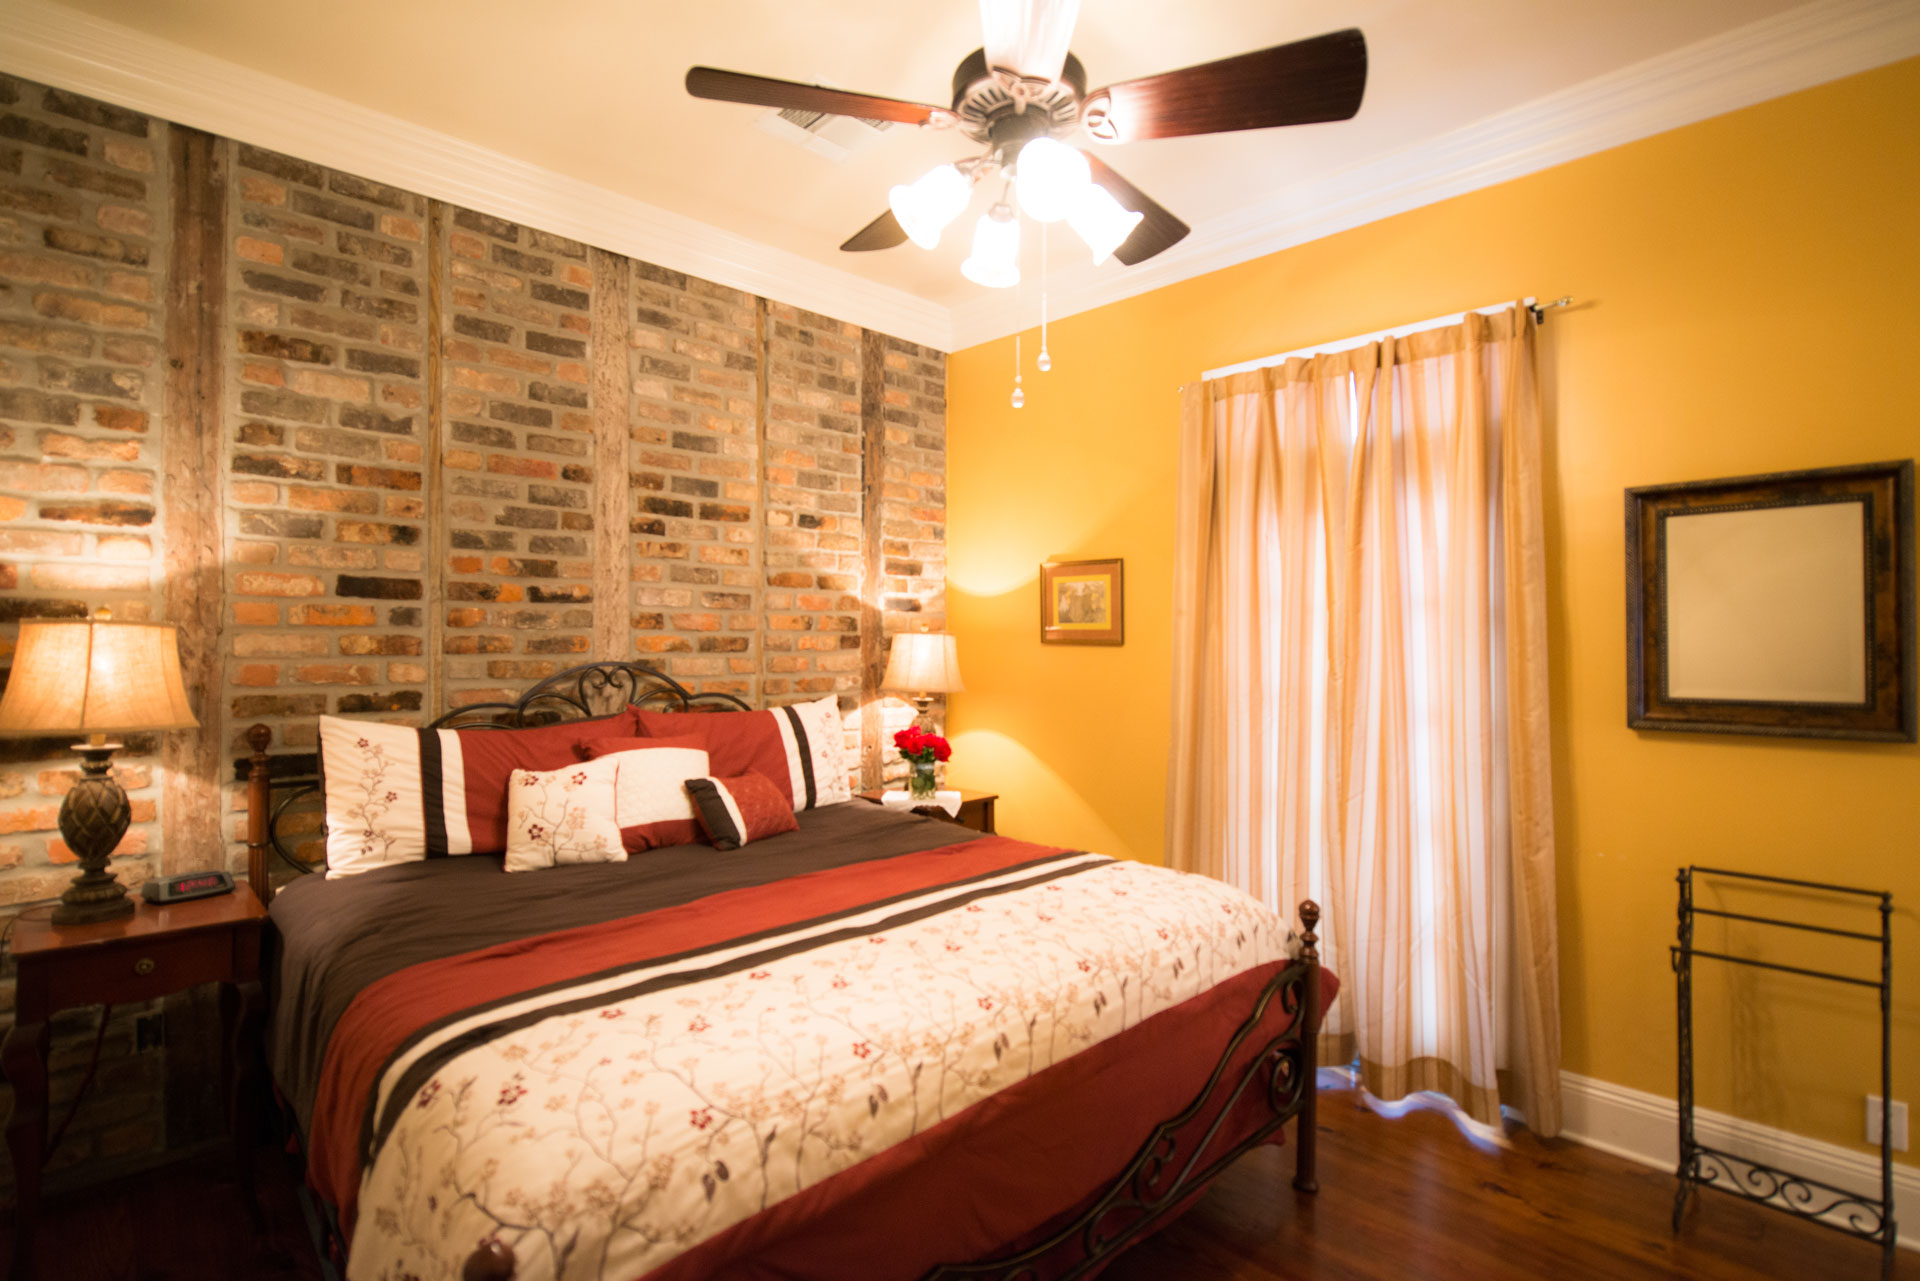 Bedroom Hotels In New Orleans